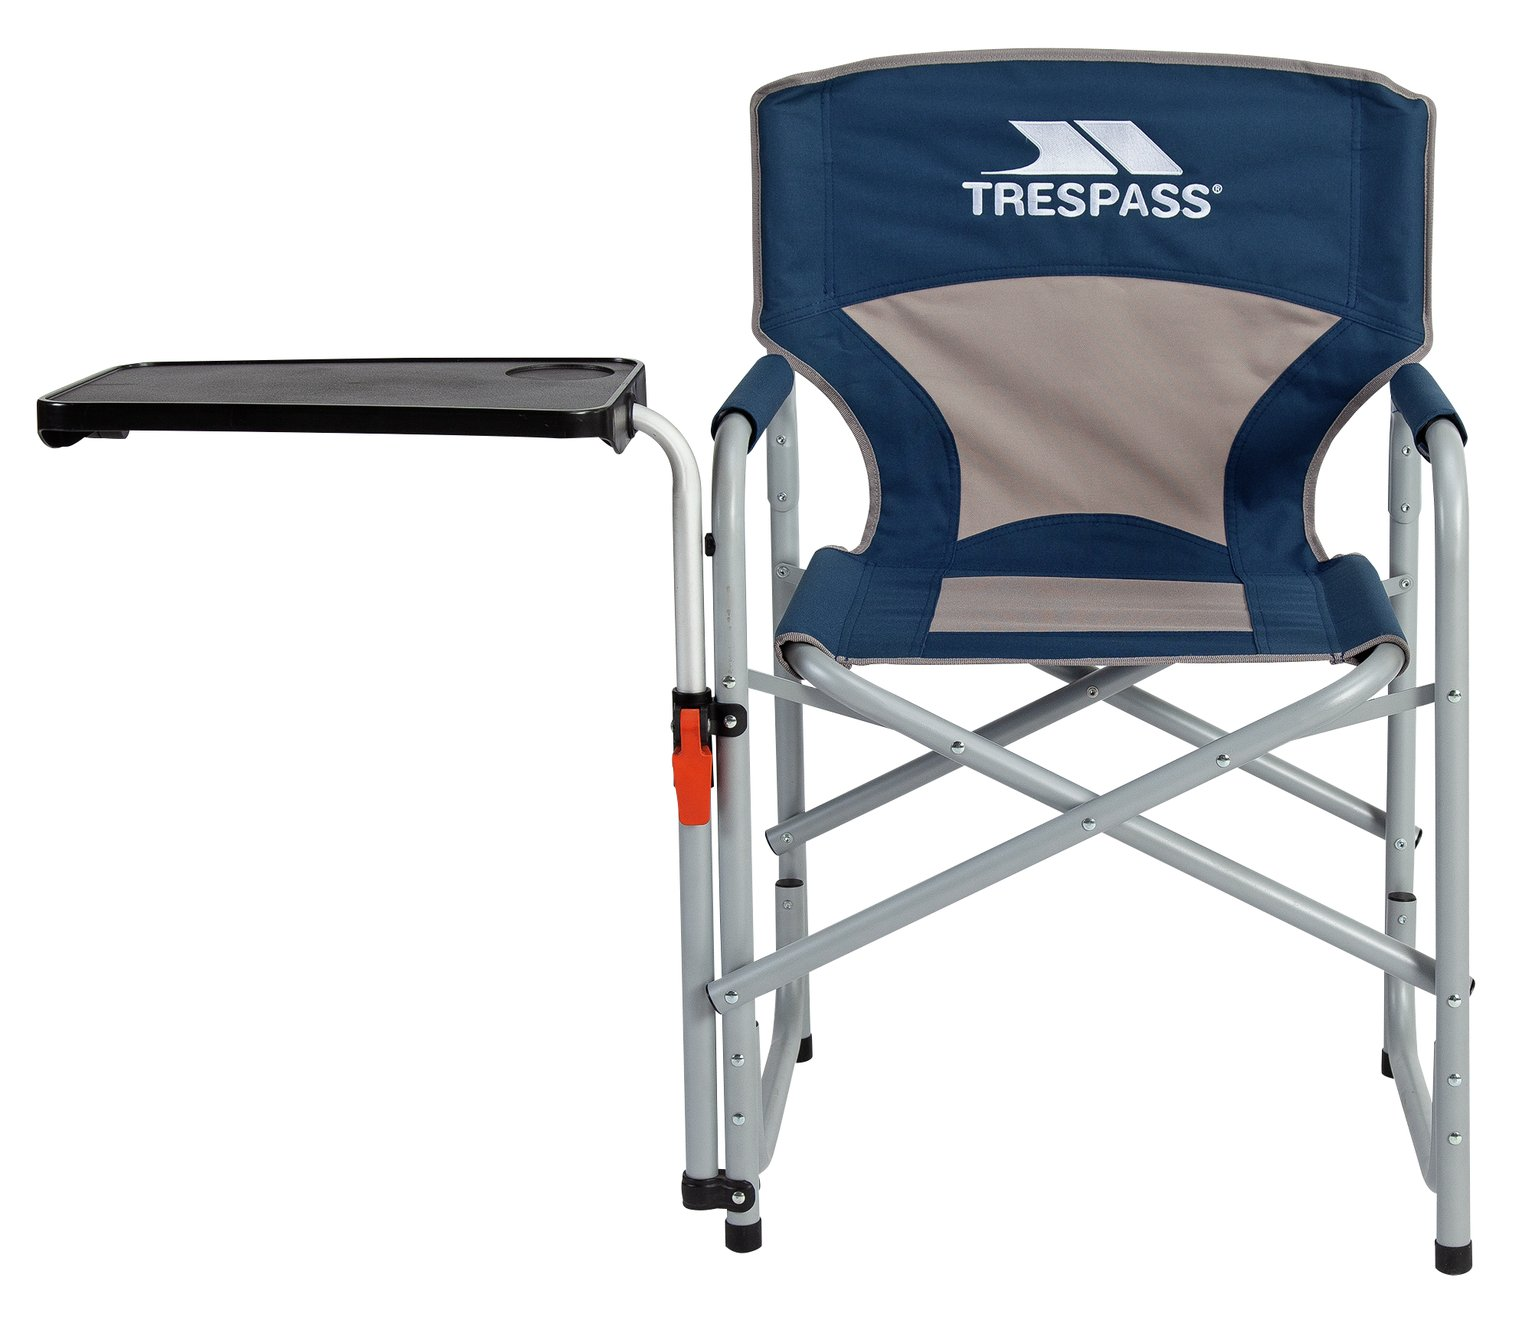 Trespass Chair with Swivel Side Table from Trespass